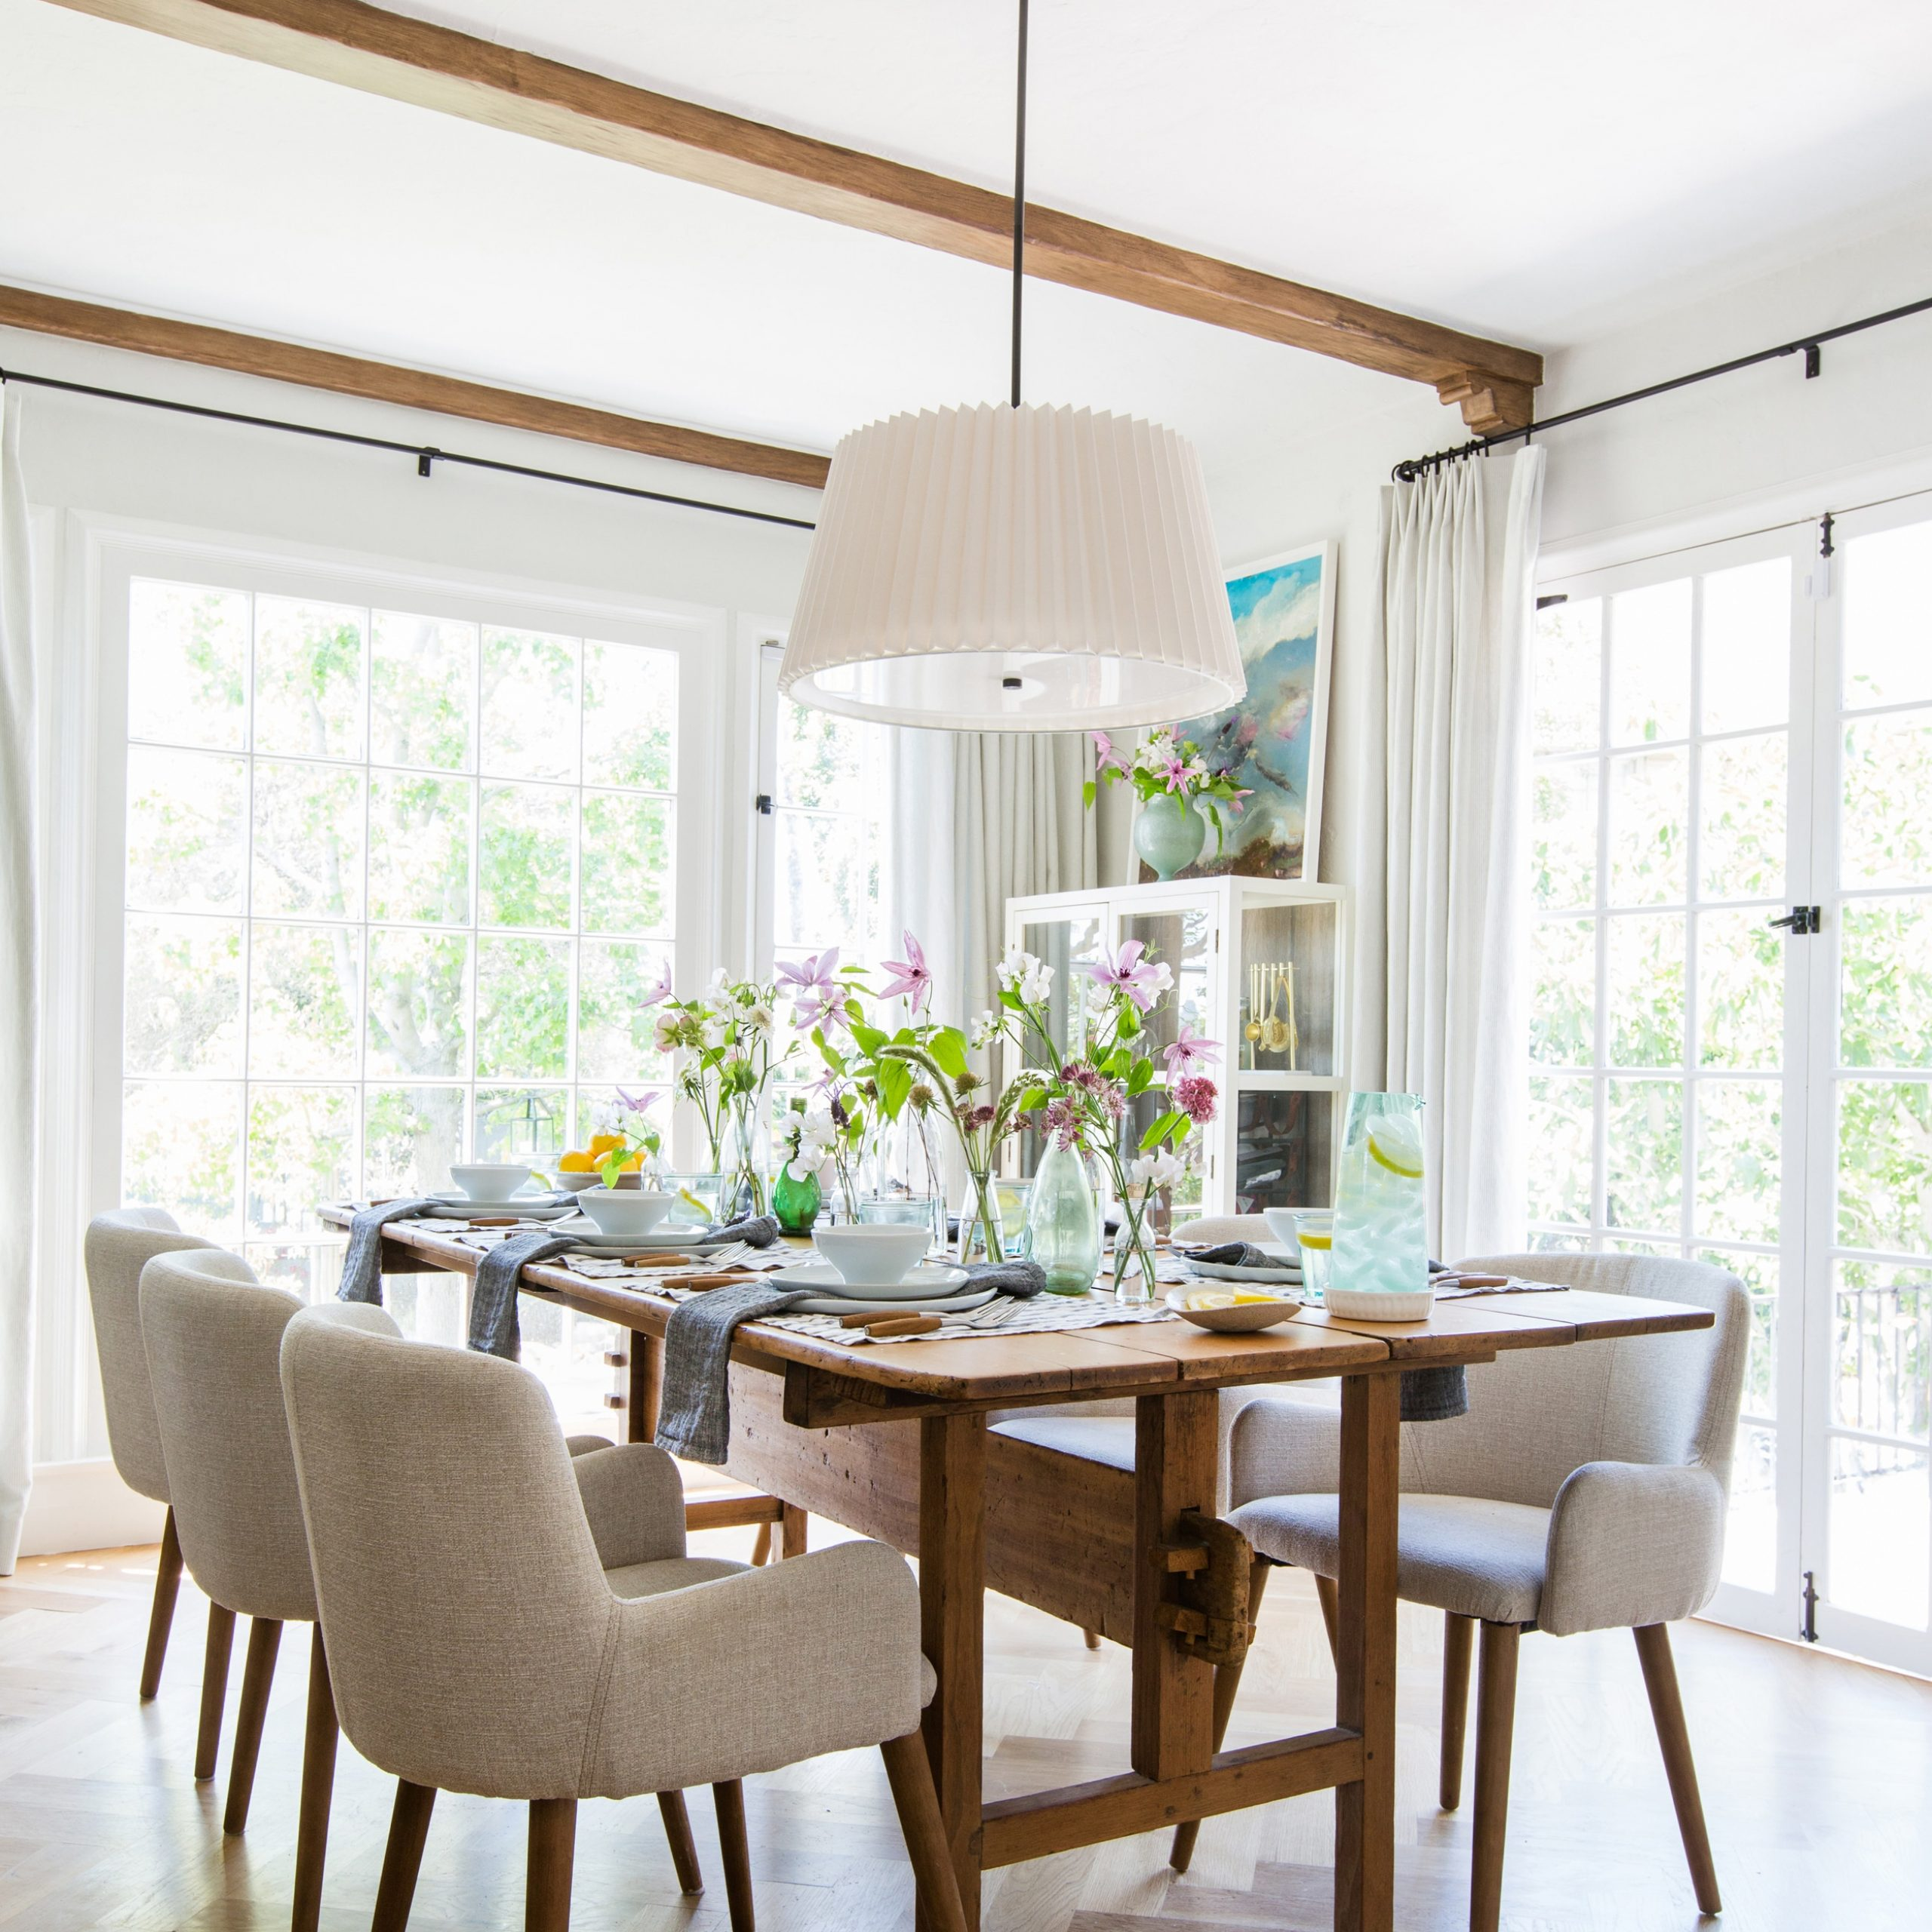 Shaw Dining Tables, Blonde Oak Within 2020 My Updated La Dining Room + My Dream Dining Chairs (Kinda (View 5 of 25)